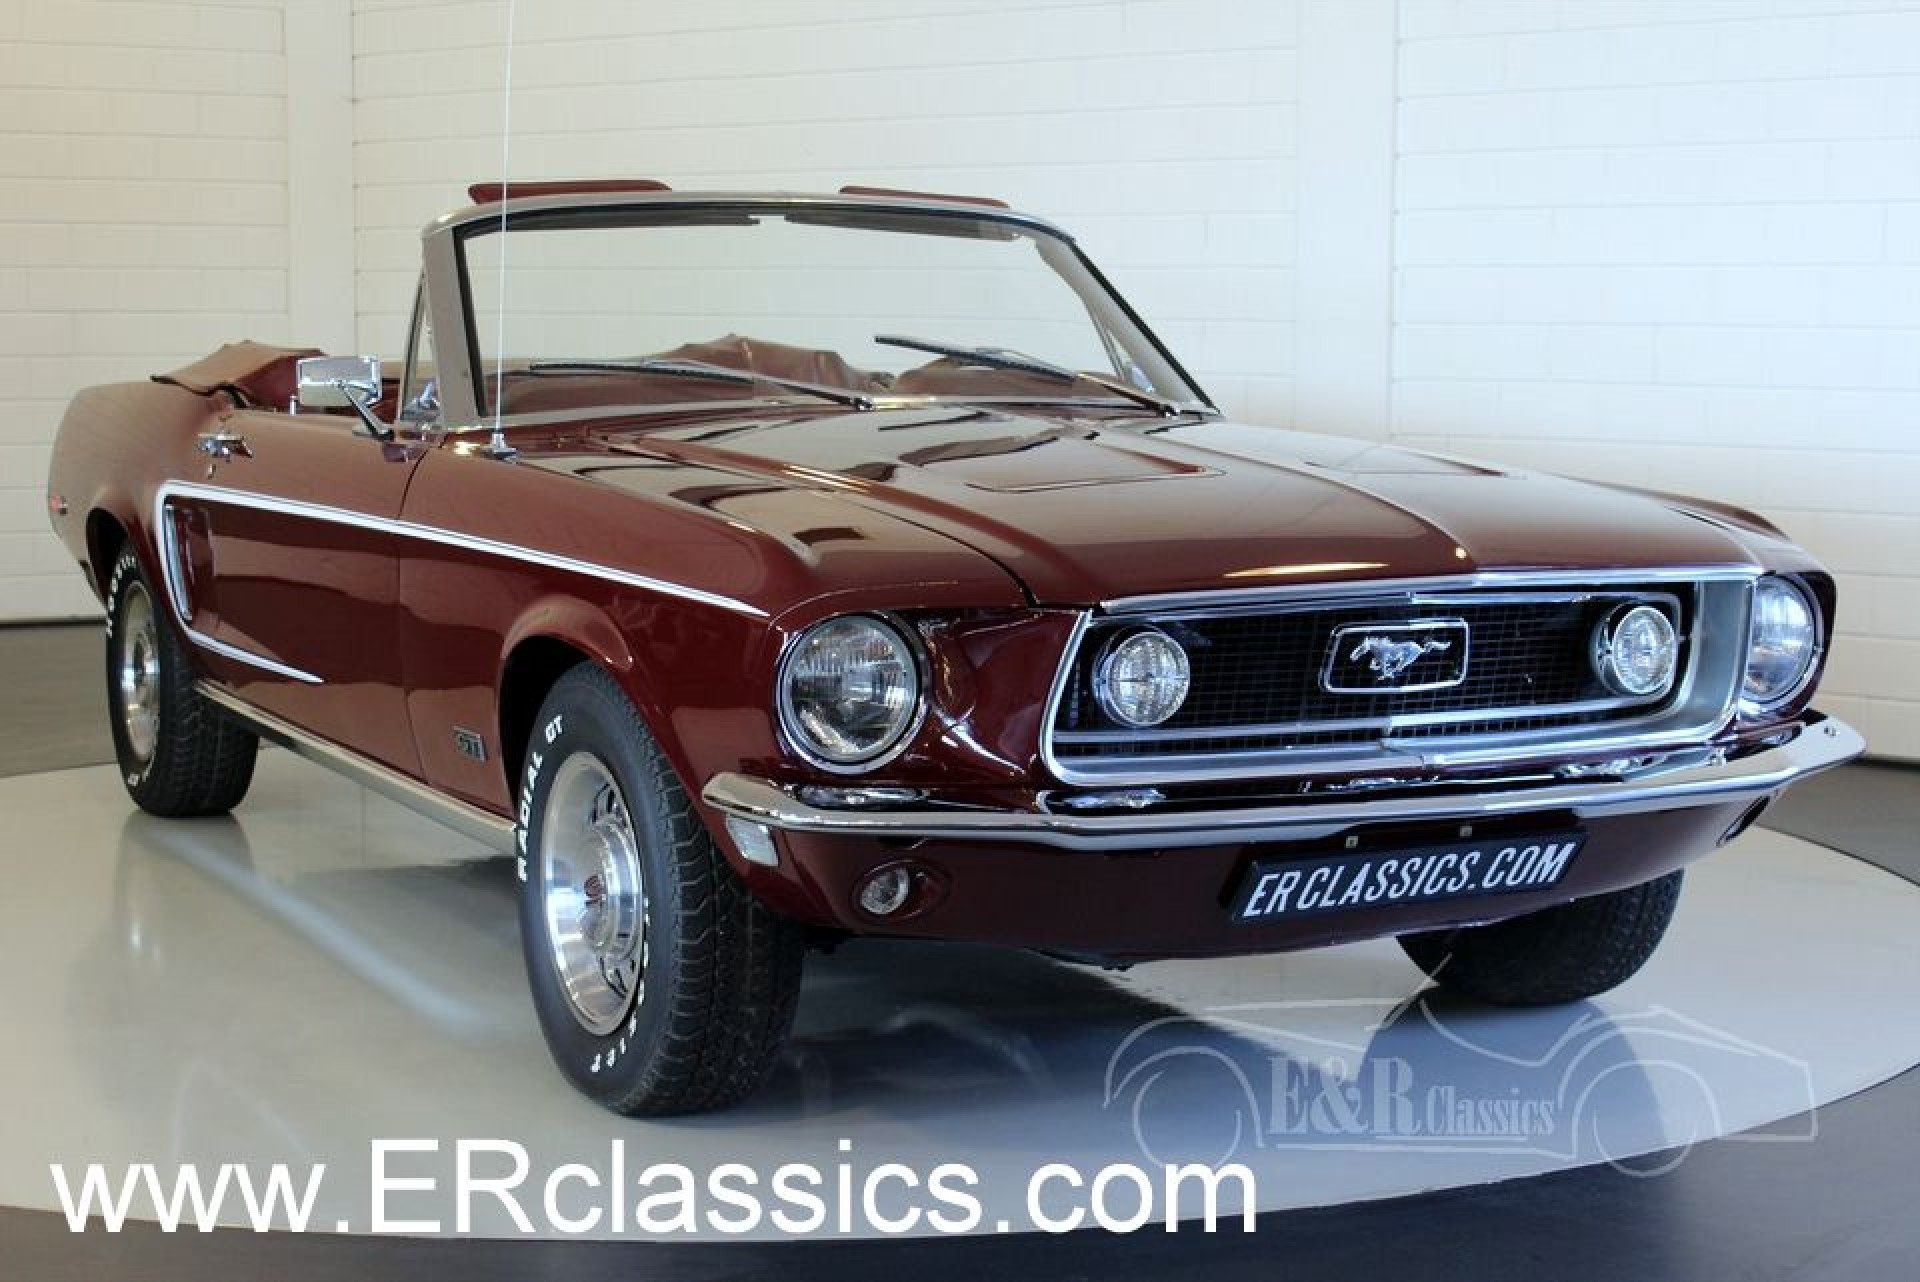 Ford mustang gt cabriolet 1968 alle fotos ansehen